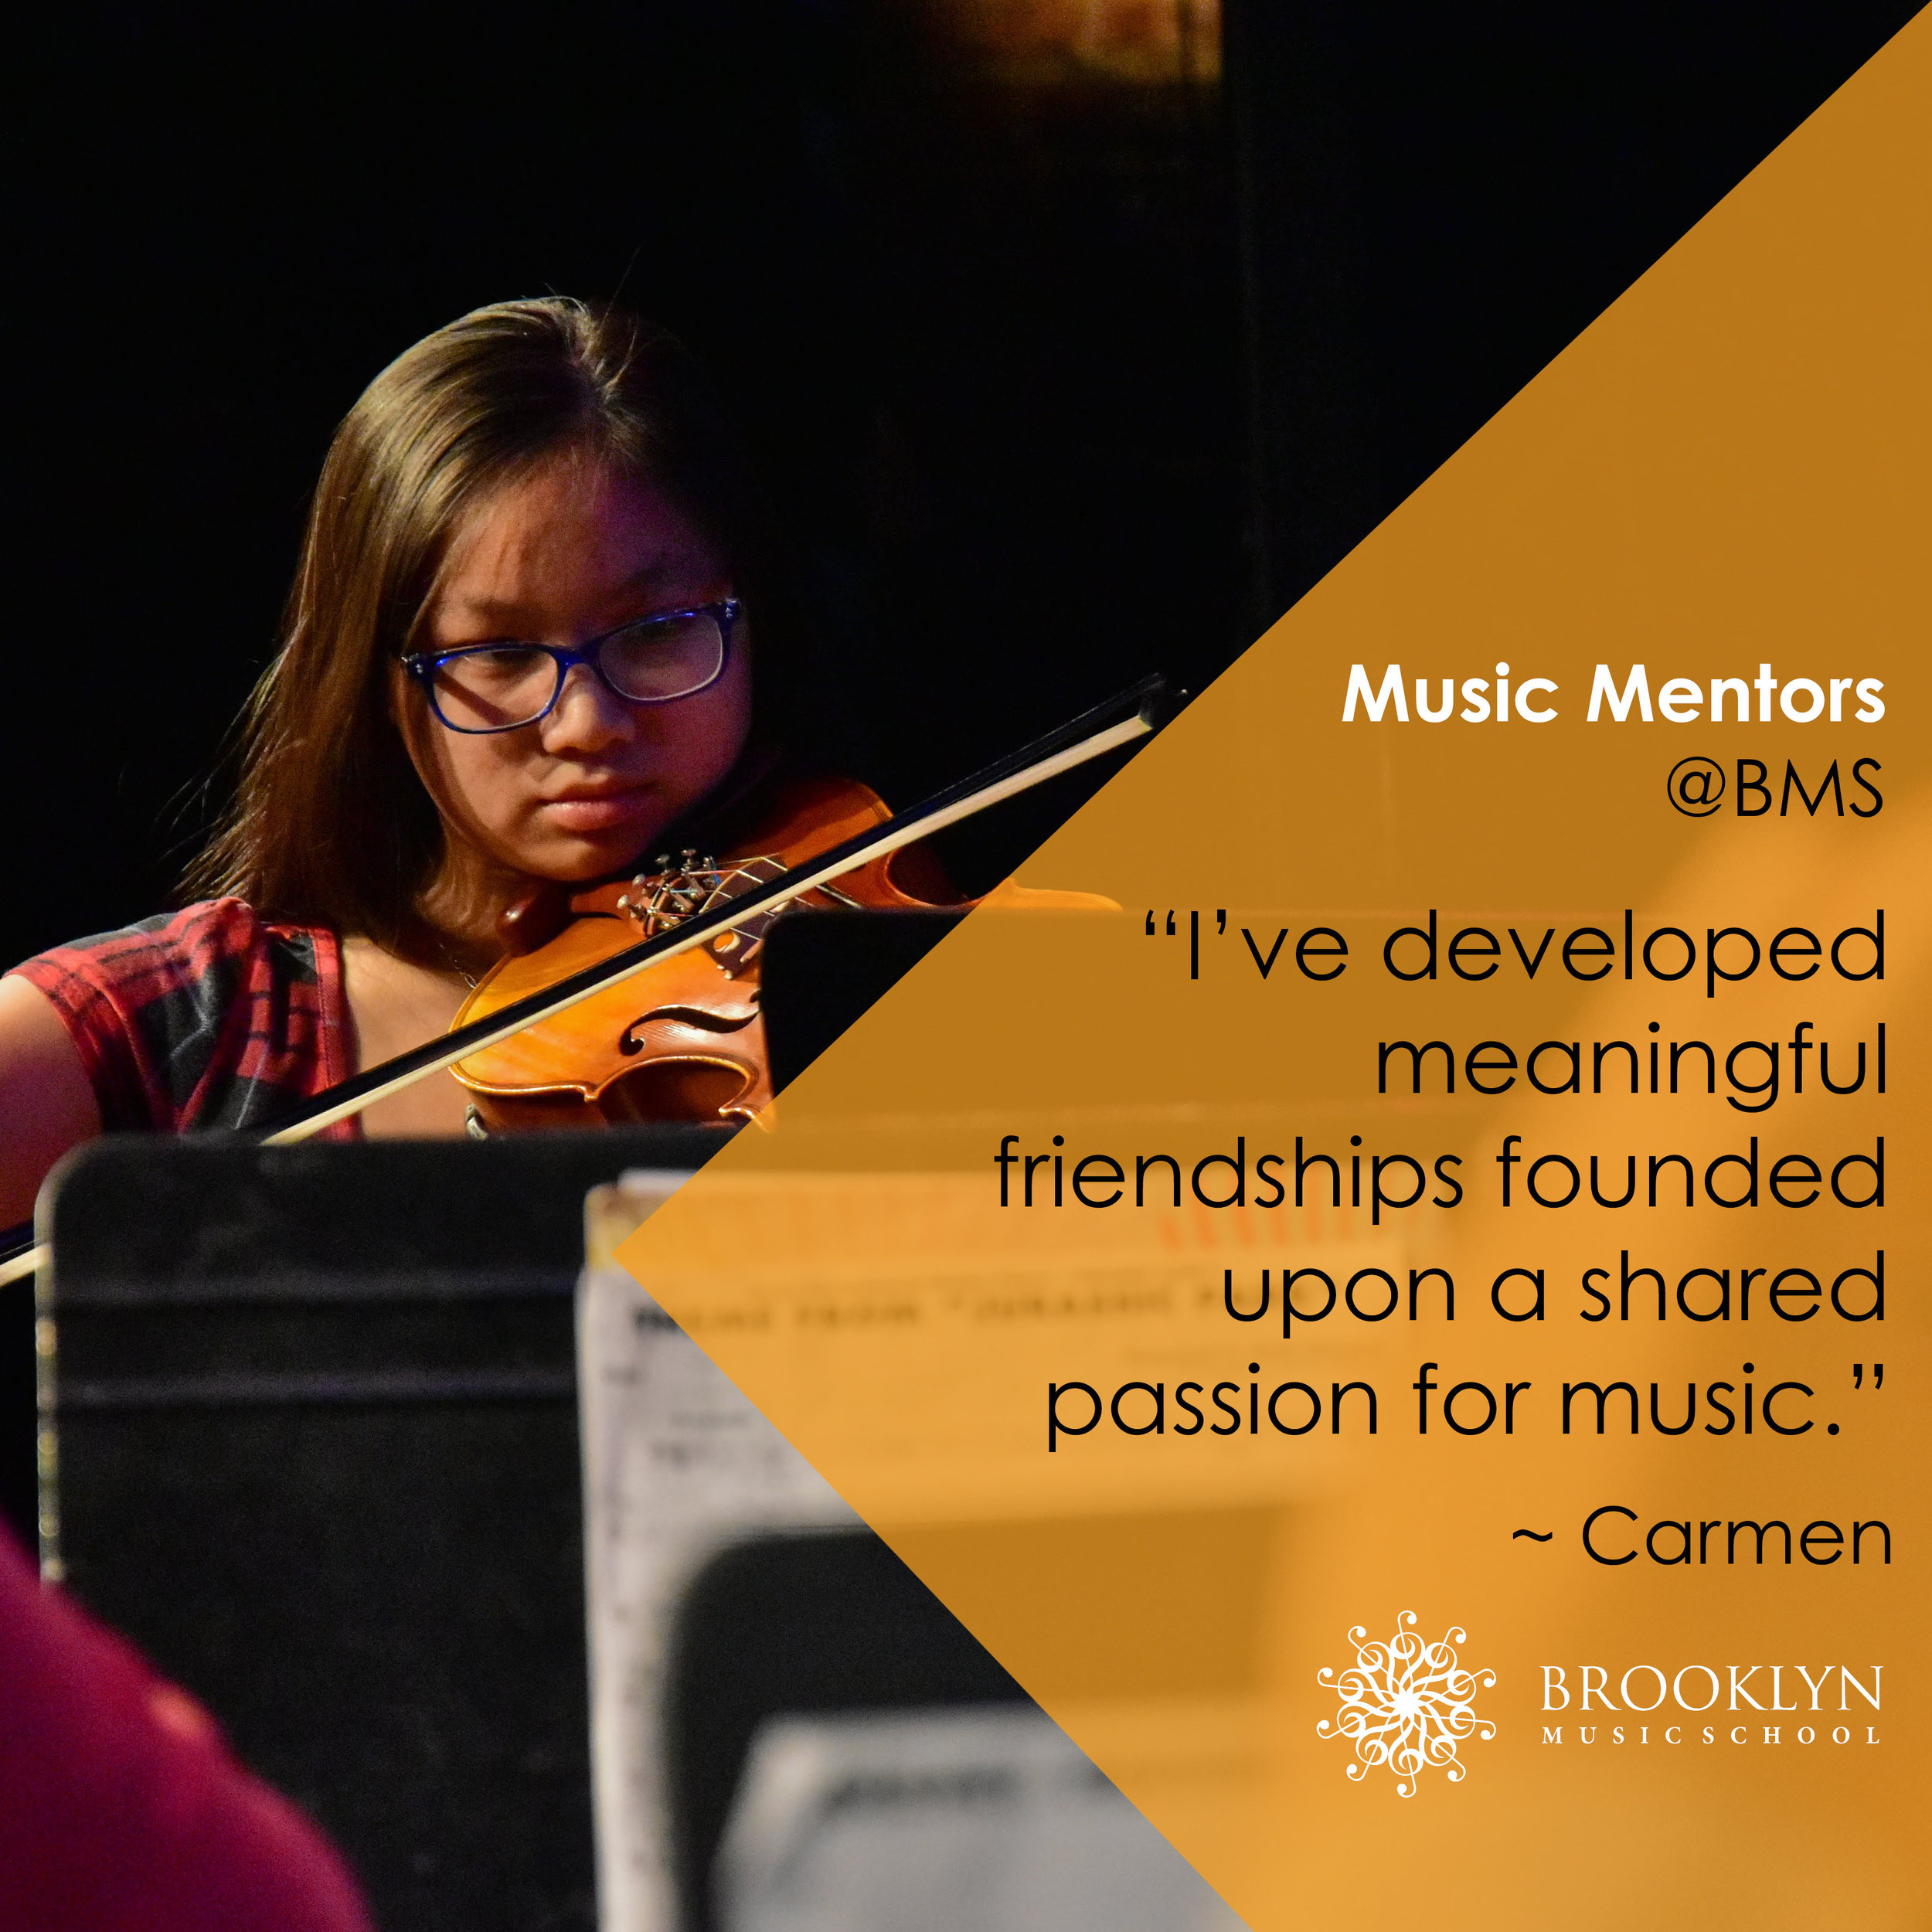 CARMEN (Violin & Piano) - I am exposed to a variety of opportunities relating to music education and musical performance. I am able to explore both the teaching and learning sales of music education. As a mentor, I've been able to observe and help out with teaching classes. One thing that really stood out to me was the way classes were taught. Since my school doesn't offer music theory classes, this school allows me to deepen my understanding of the technicalities of music. Before theory class, I didn't have much knowledge on the difficult types of chords and how they relate to each other. In addition, I've gotten various performance opportunities. For example, I've been able to perform with the youth and adult orchestras, as well as play solo in the recital. Before studying at BMS, I did not had many performance opportunities, so I immensely grateful for those that BMS provides me. I've also been able to develop some meaningful friendships. I've never been able to make many friends with the same passion for music, and part of this community pushes me to develop my musical abilities and understanding.